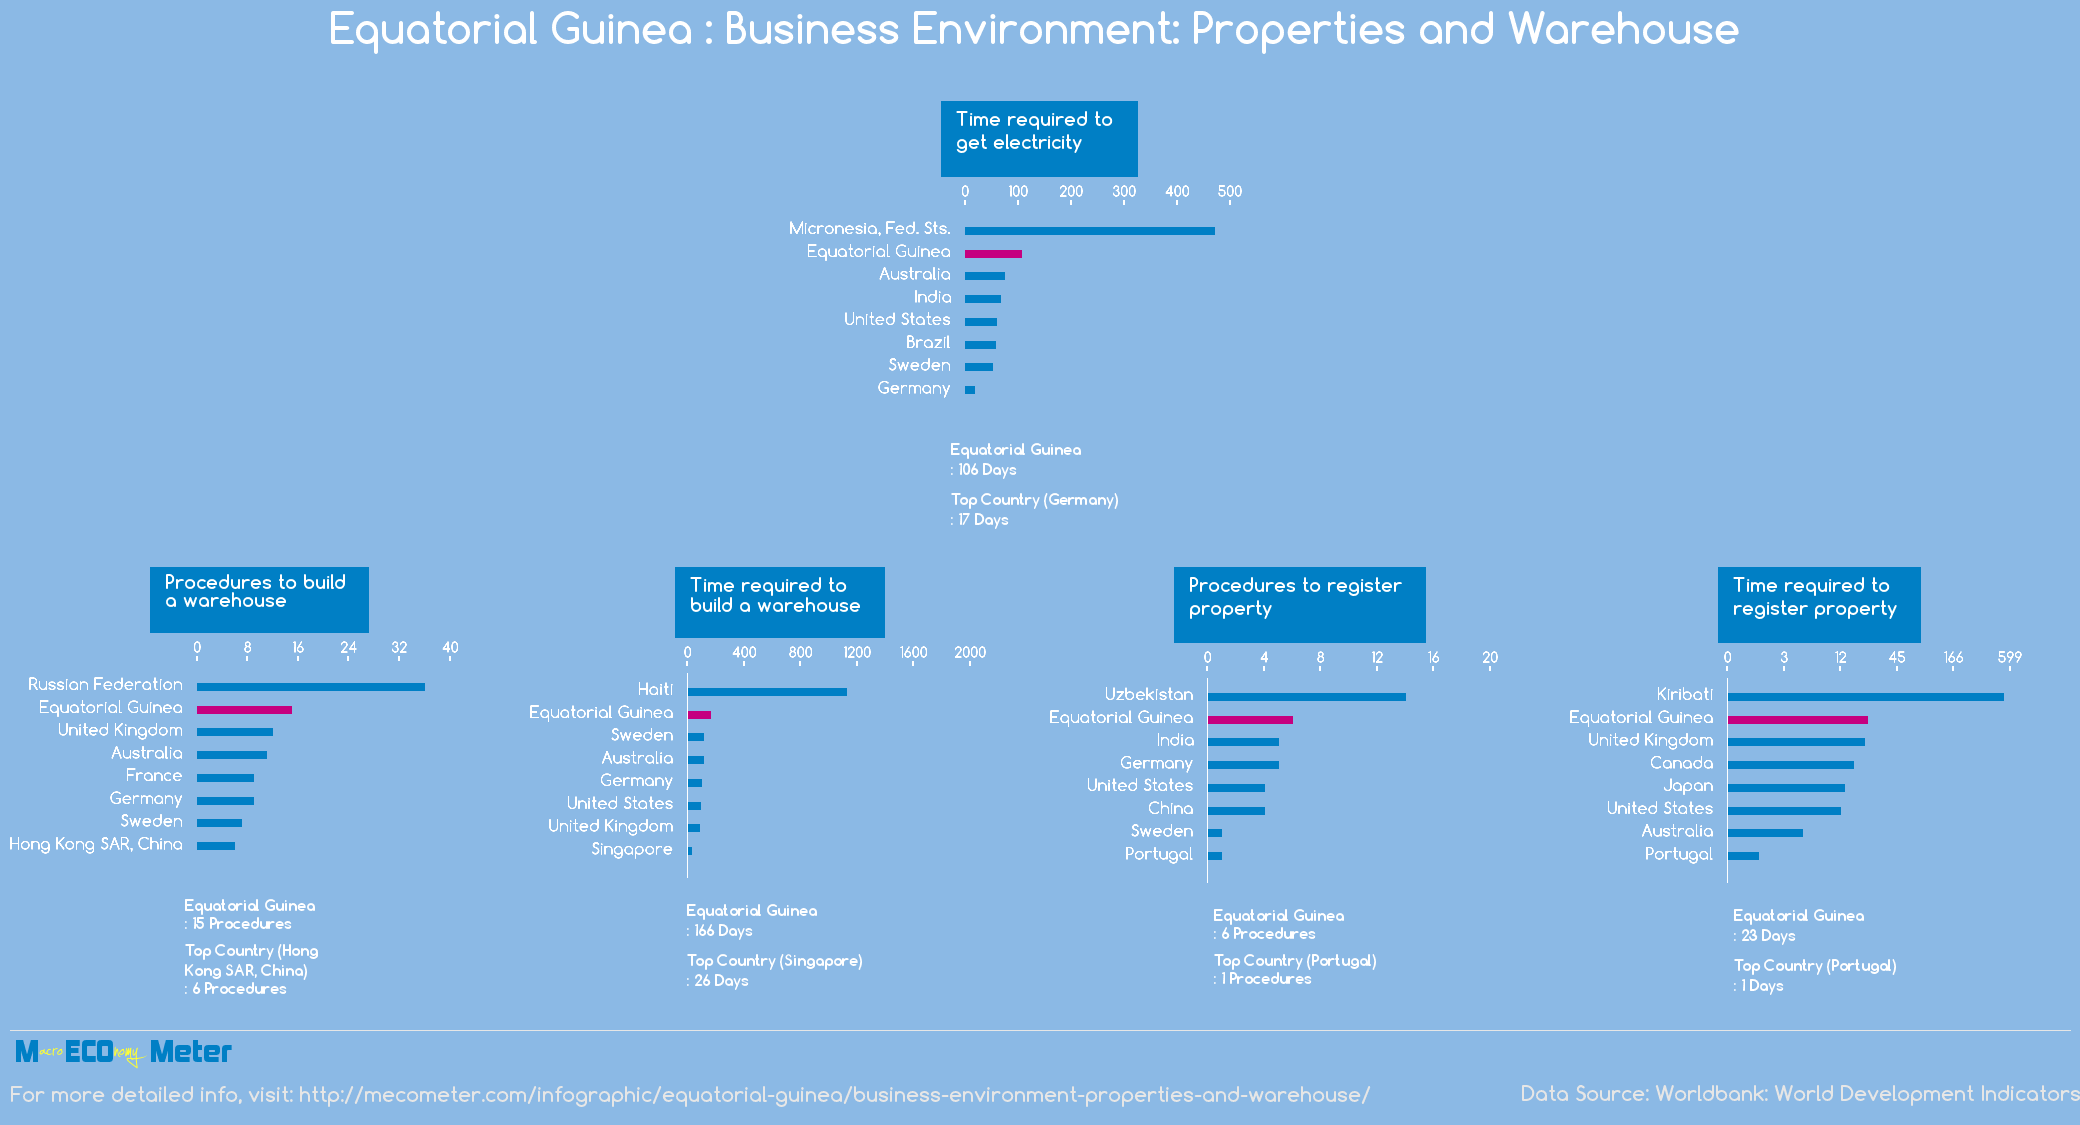 Equatorial Guinea : Business Environment: Properties and Warehouse